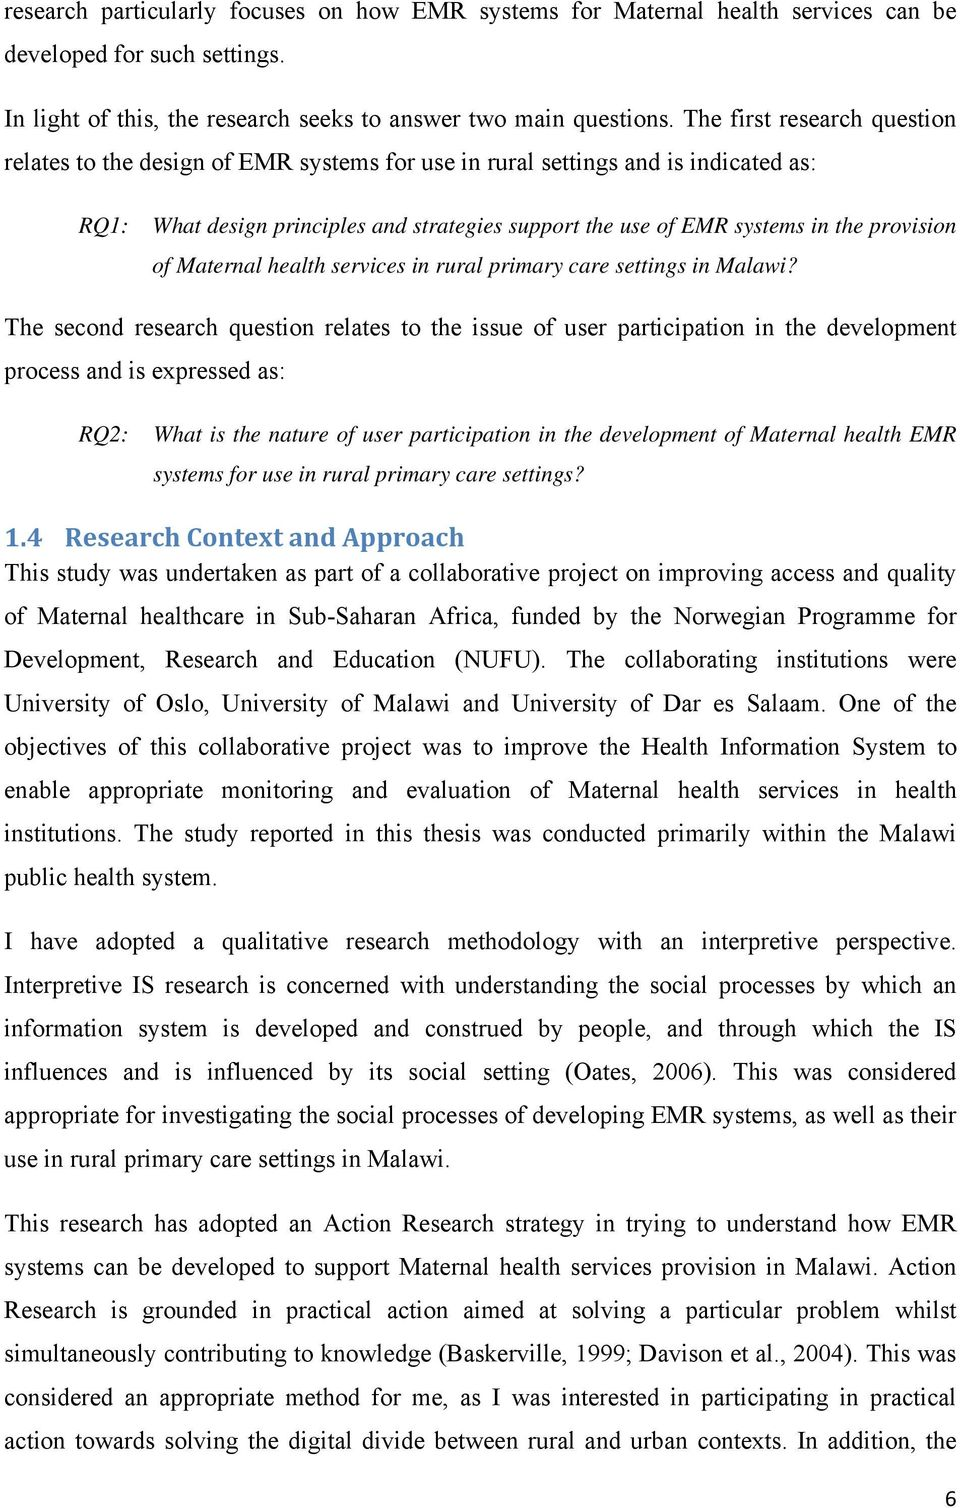 provision of Maternal health services in rural primary care settings in Malawi?